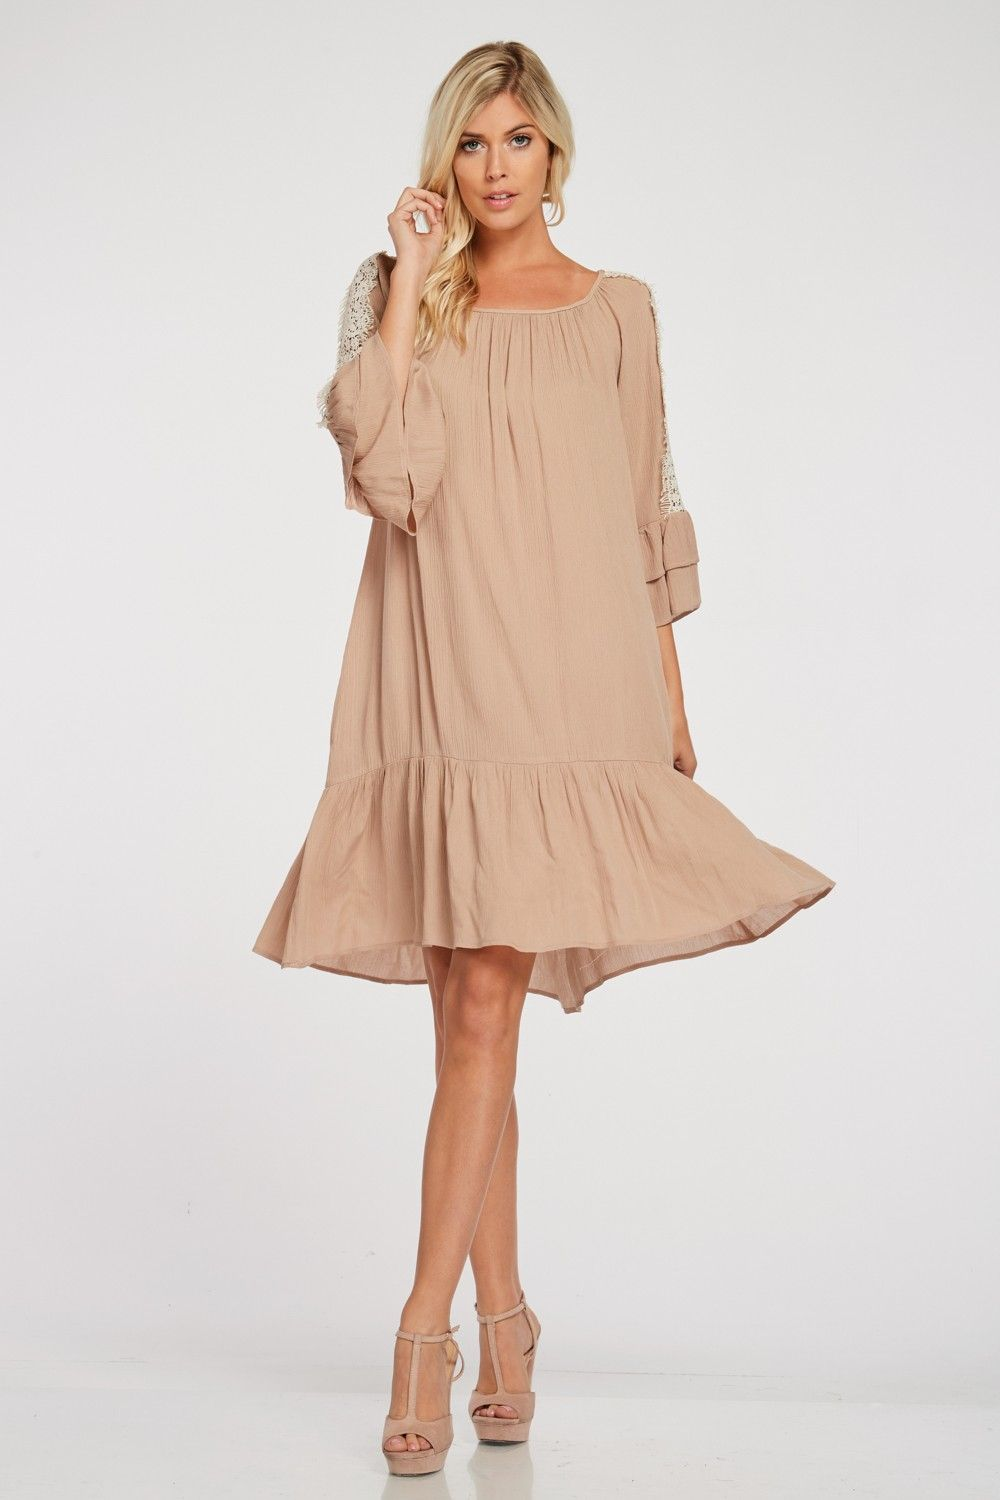 69bbb6d98e YOUNG CONTEMPORARY, DOUBLE BELL SLEEVE, RUFFLE HEM DRESS, LACE ...